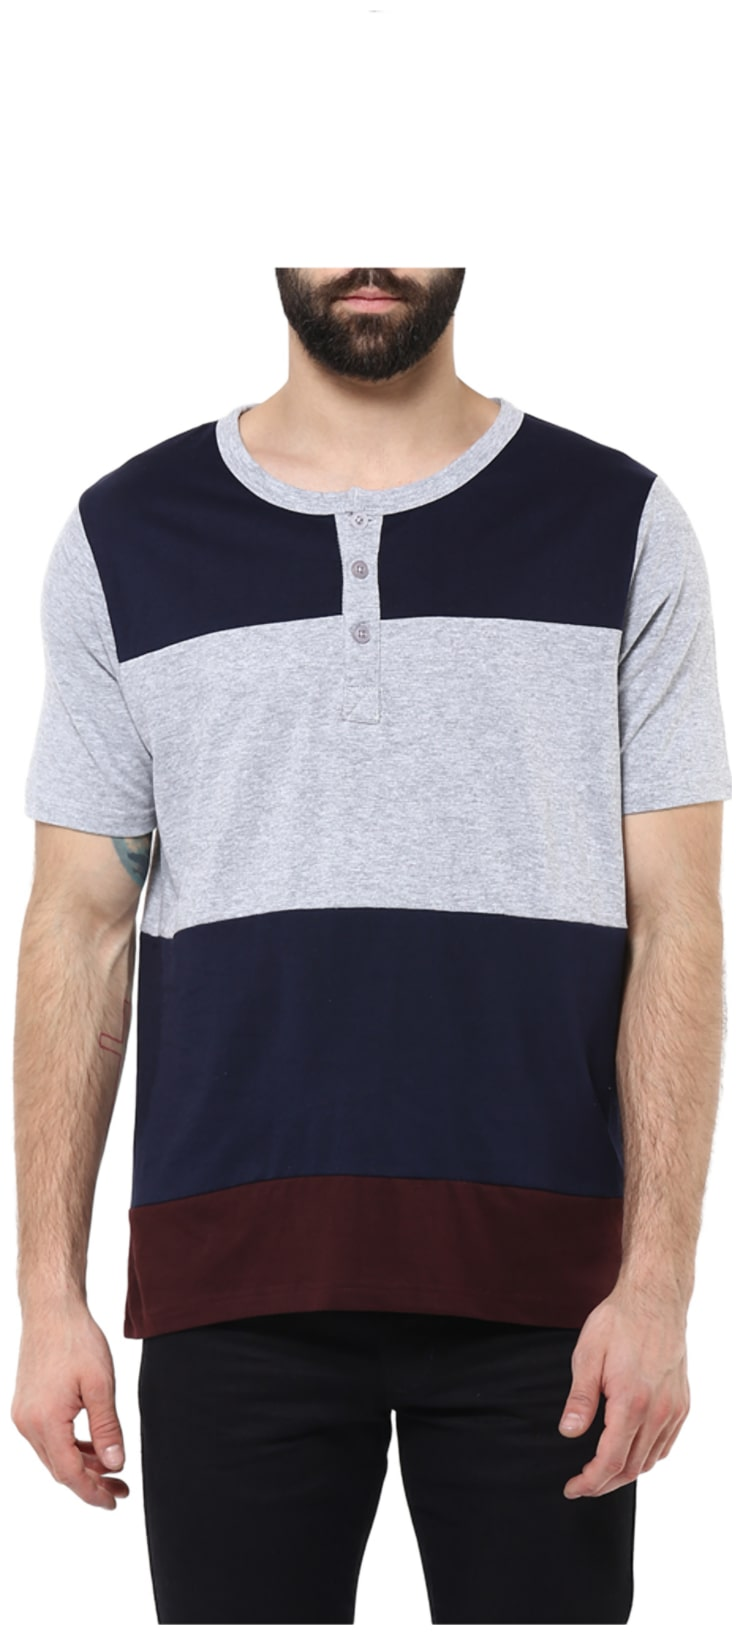 https://assetscdn1.paytm.com/images/catalog/product/A/AP/APPURBANO-FASHIIMPE166717B8002719/1562799684192_1..png